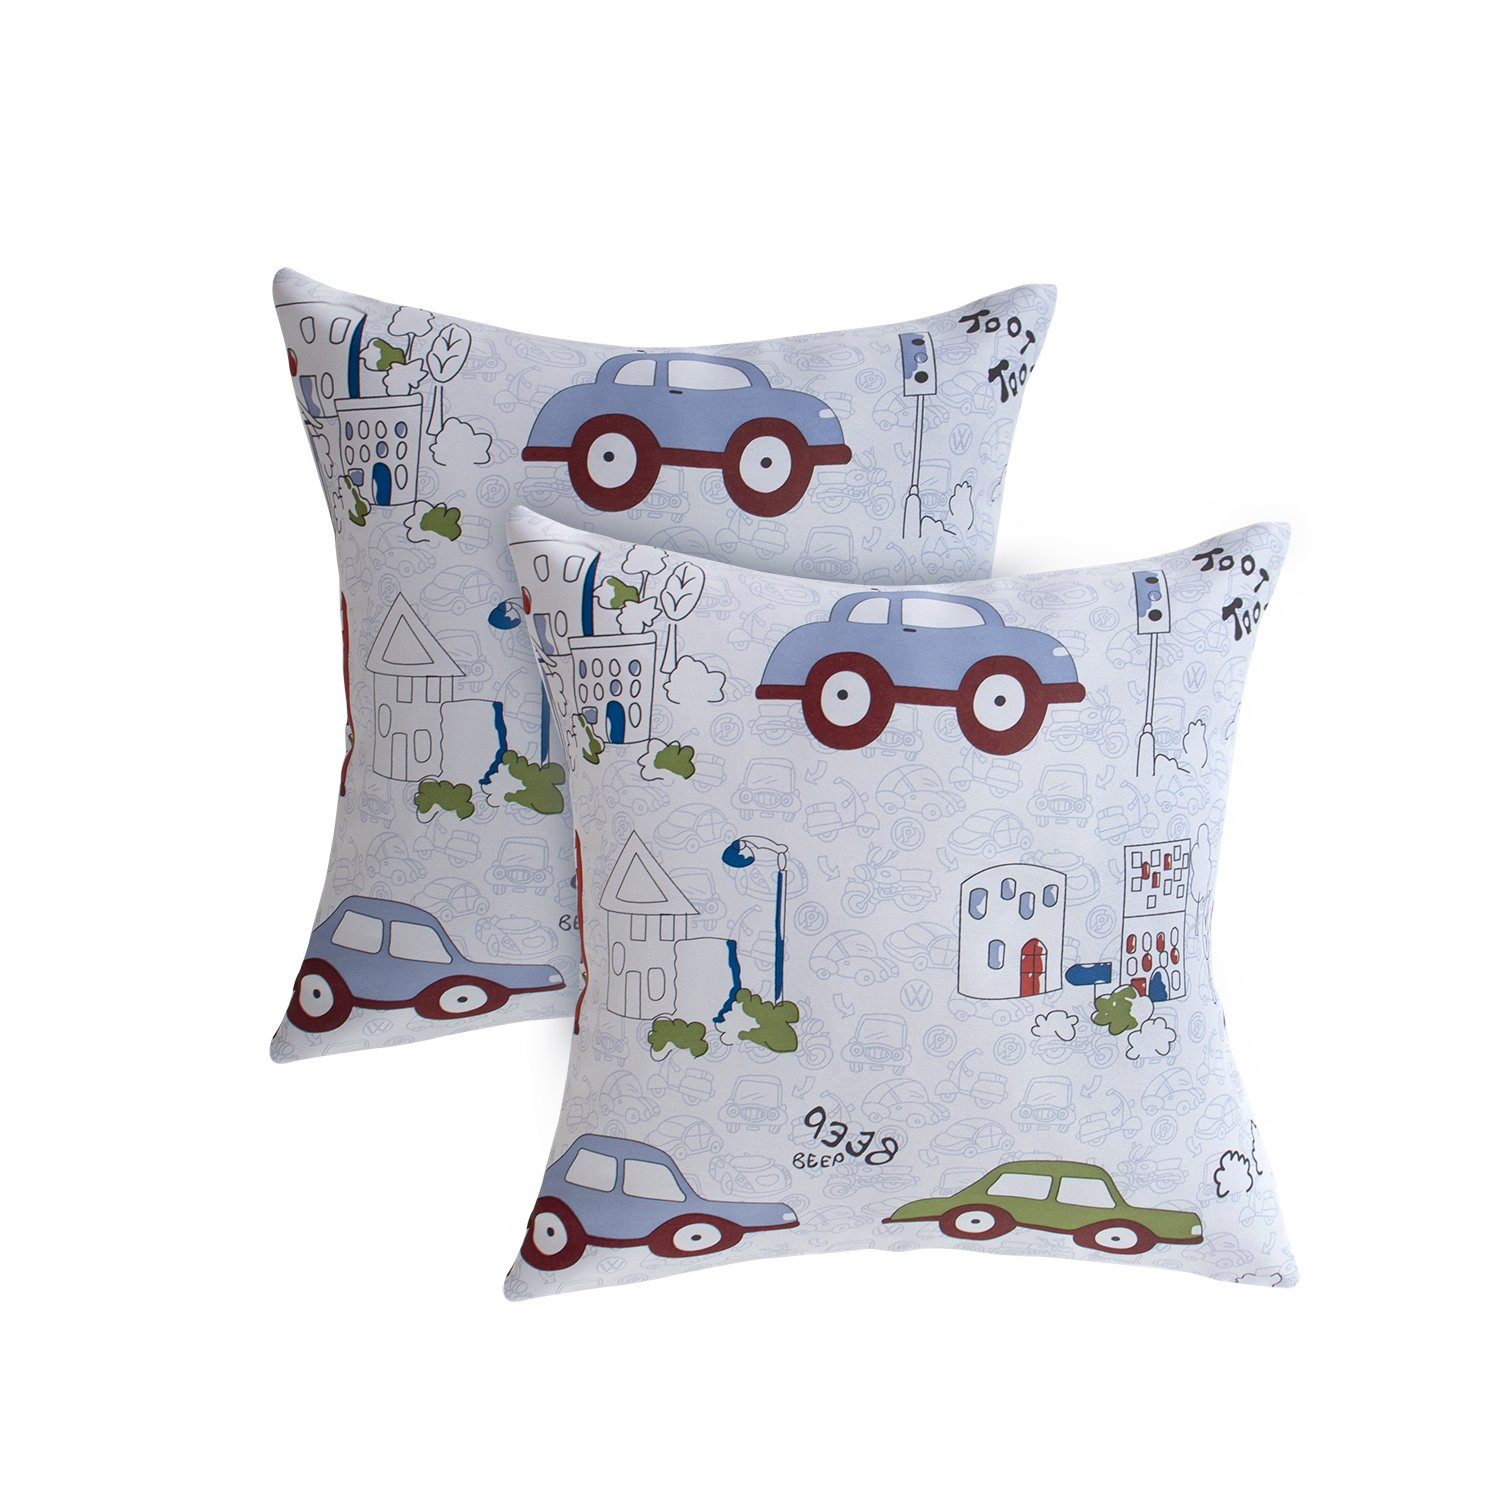 BGment Cartoon Car Pillow Cases Cushion Cover Home Pillowcase Soft Bed Square Pillowcover Set of 2, Size 18 x 18 Inch BGment Hometex